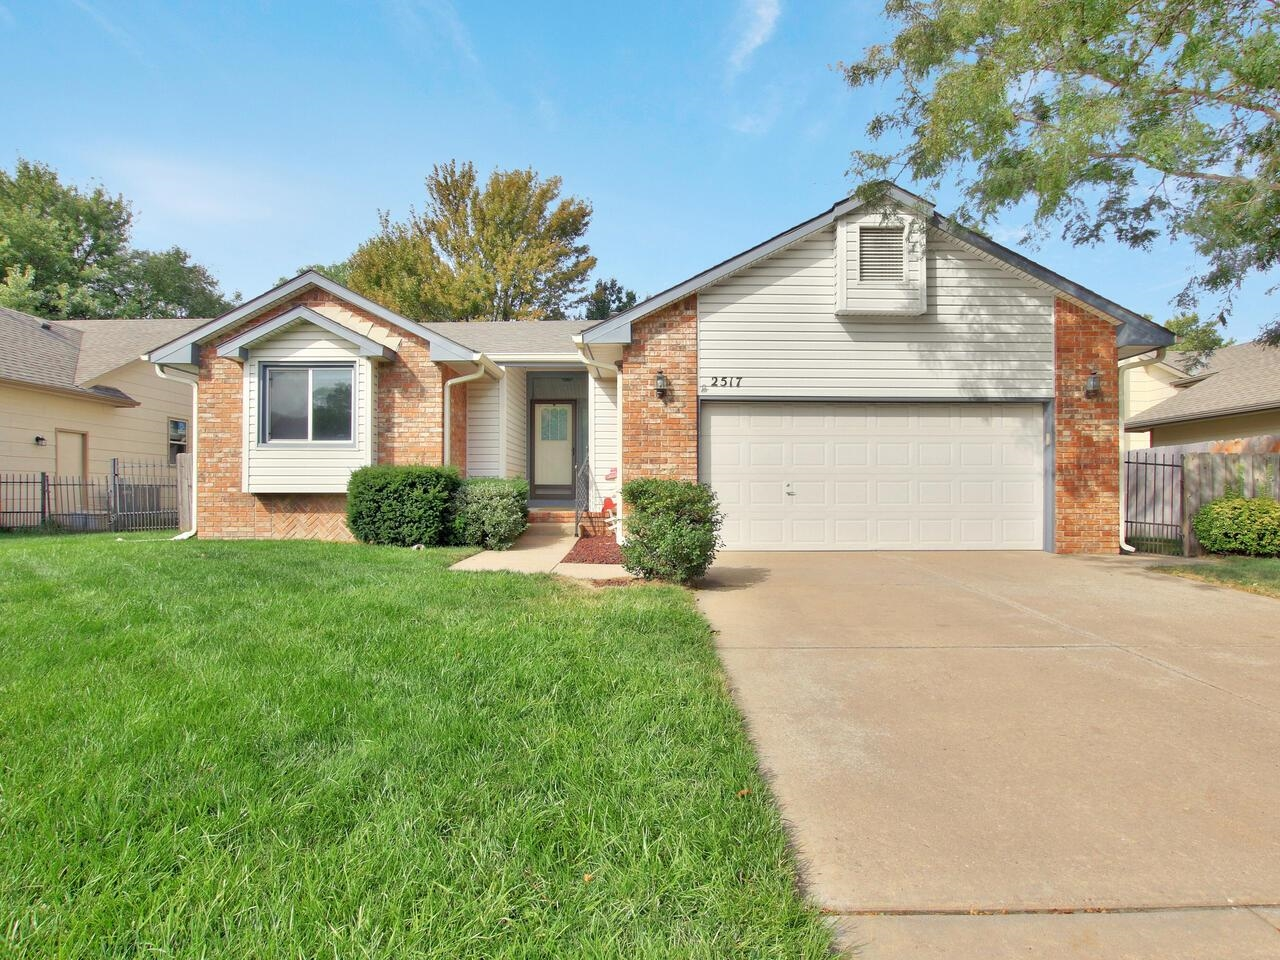 Charming home in Chadsworth addition in NW Wichita.  Permanent siding, new roof in 2021 and new HVAC